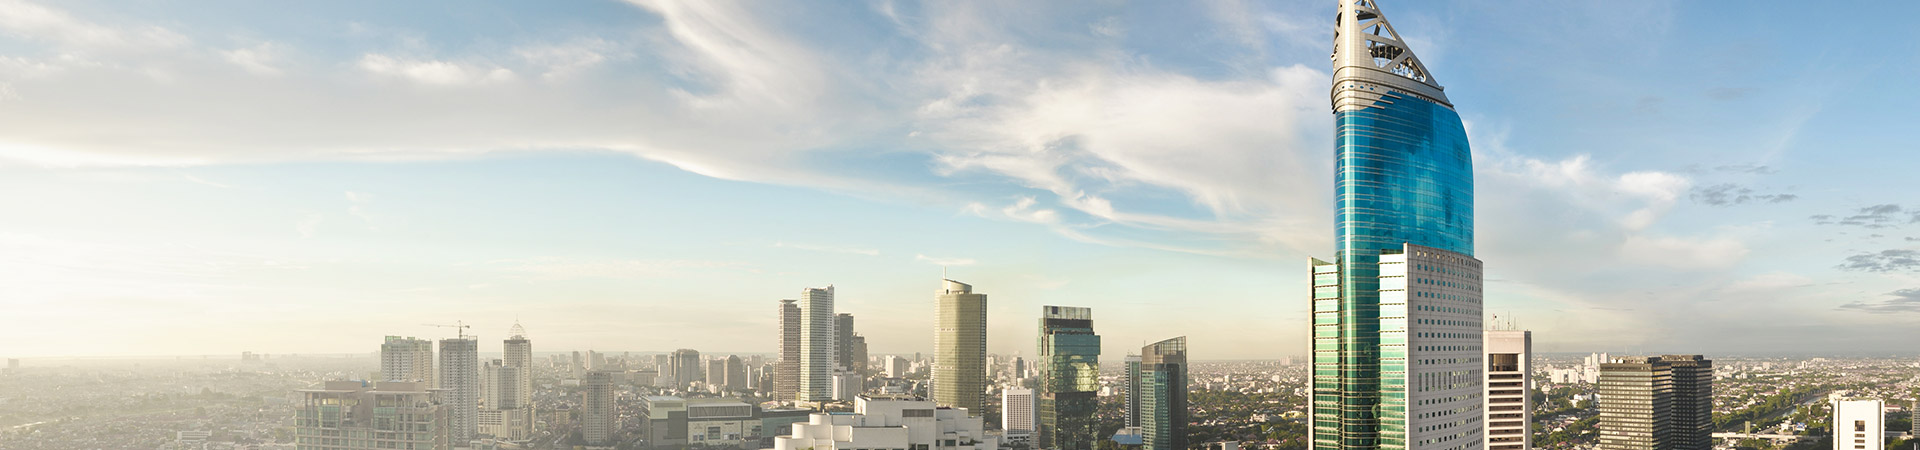 CB-stages-ssi-for-deutsche-bank-ag-jakarta